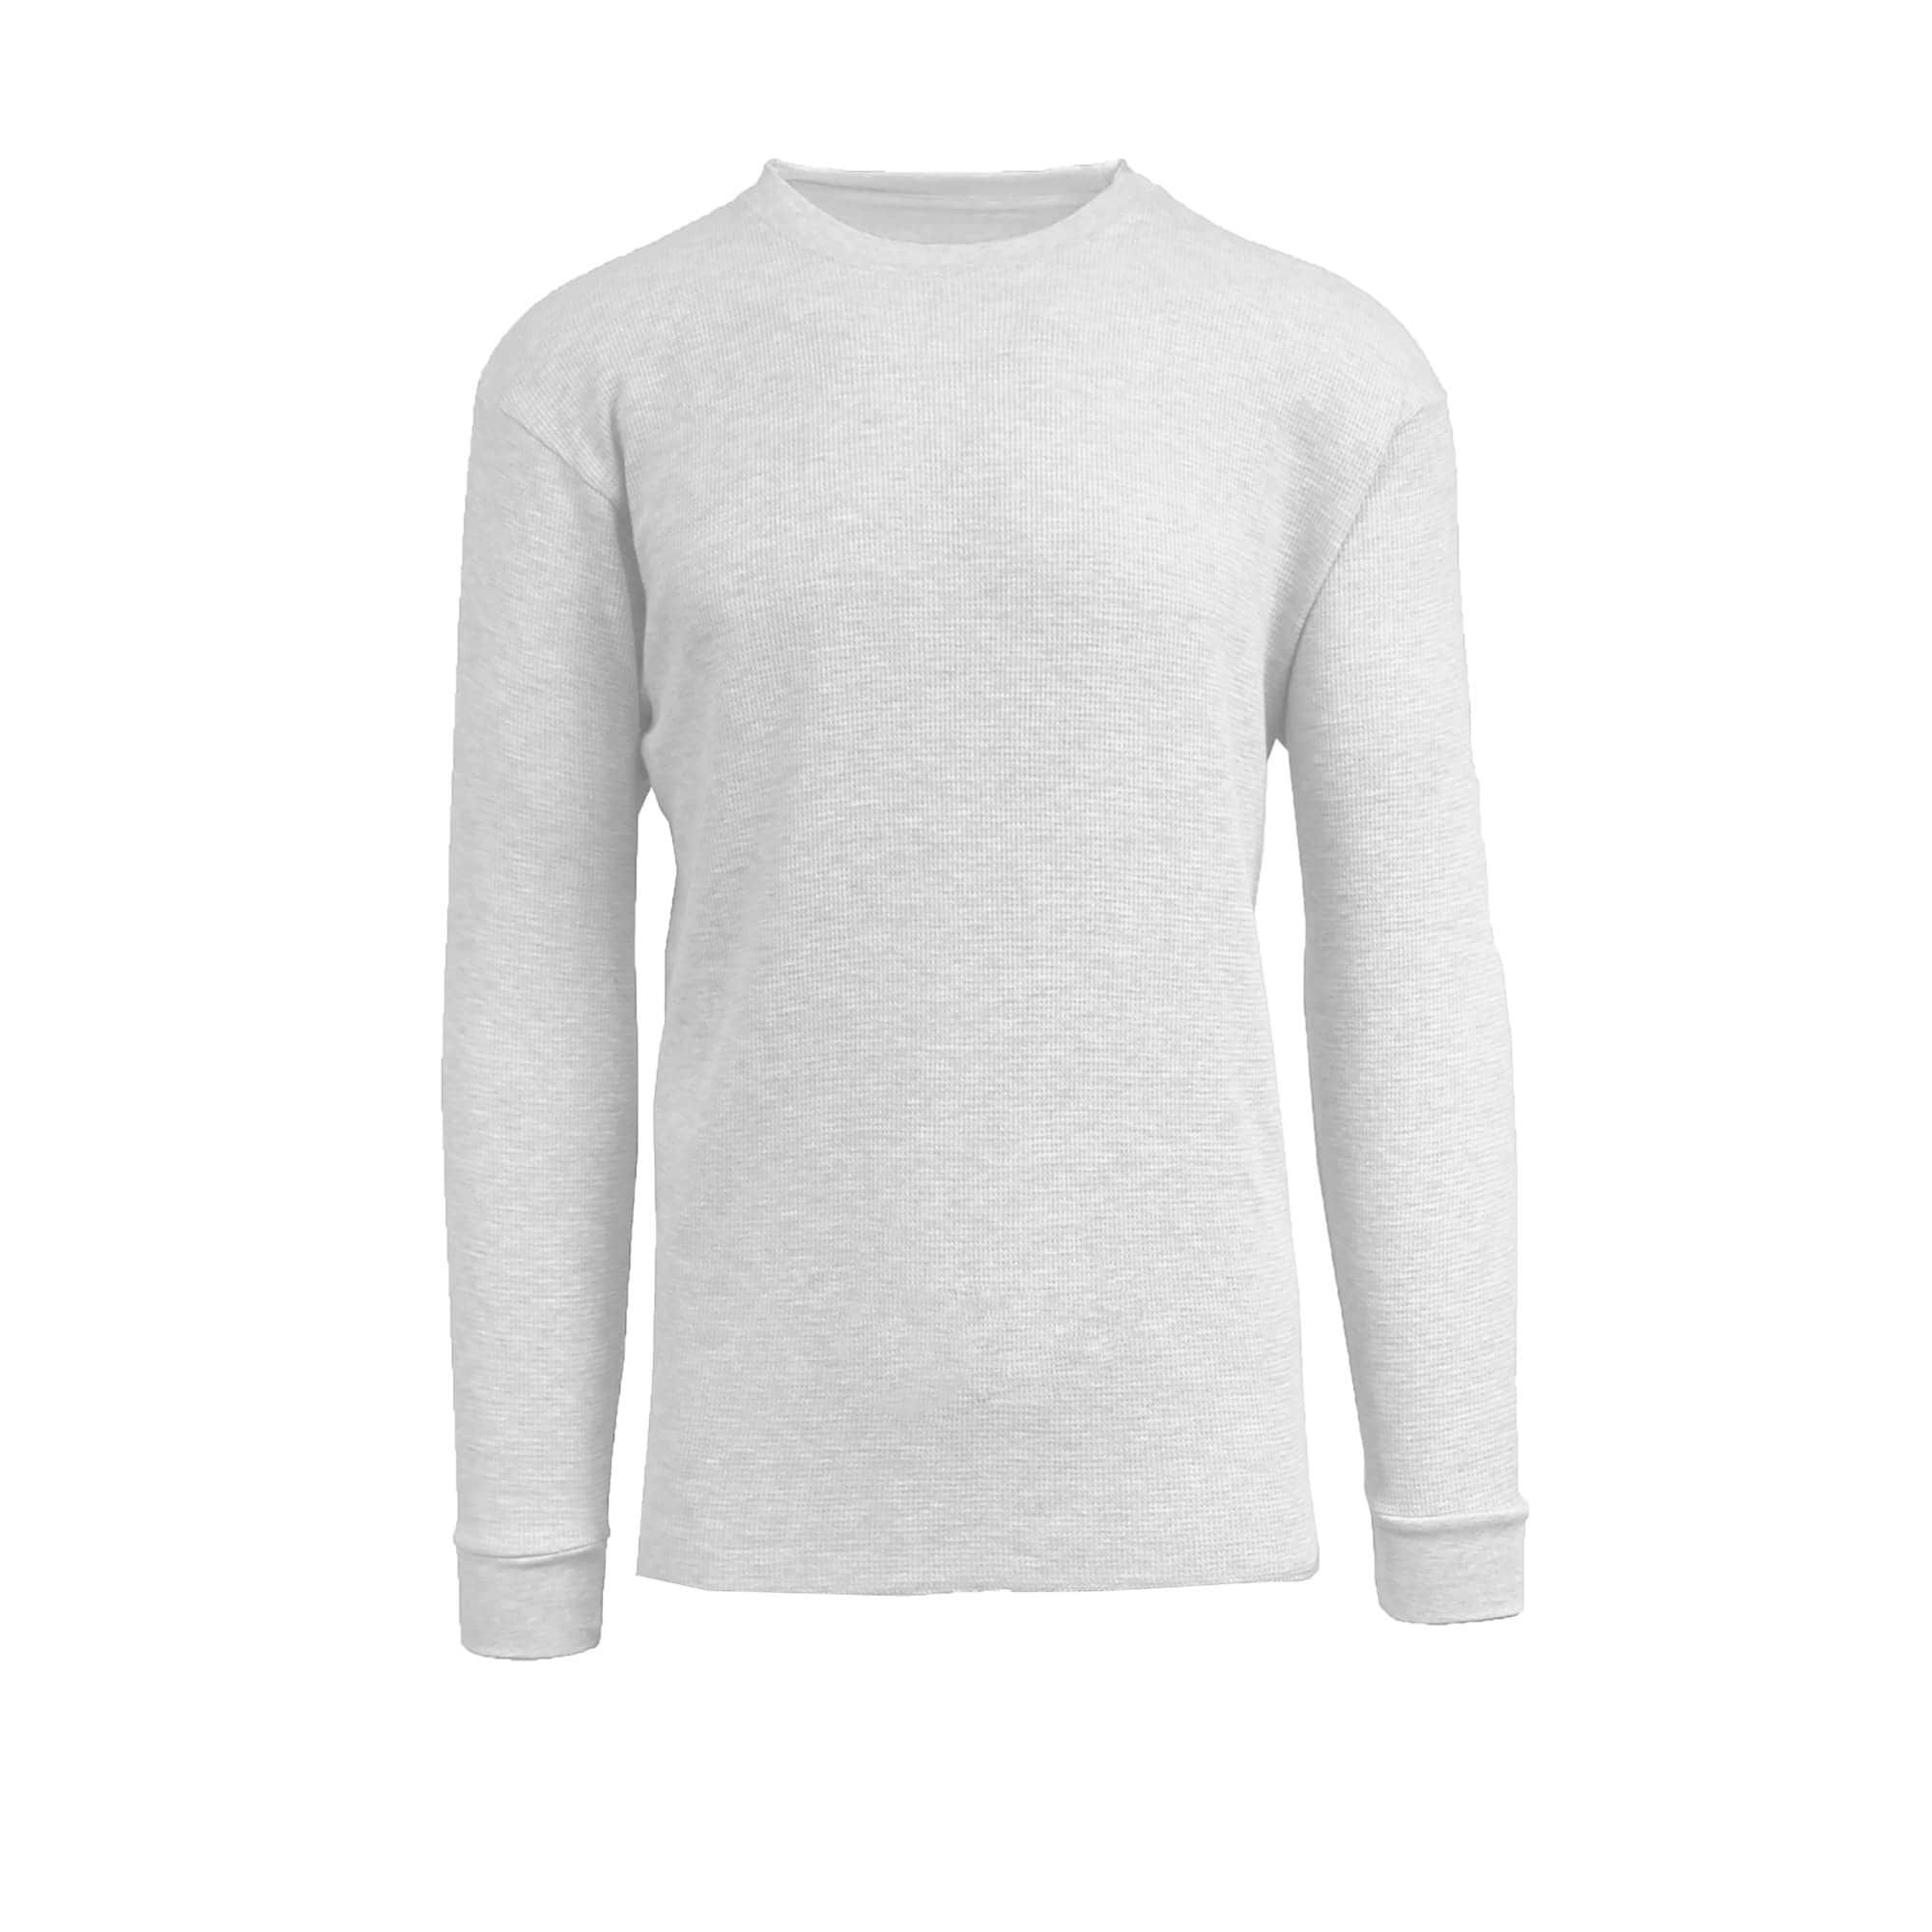 7fcba59d237e Galaxy By Harvic Men s Long Sleeve Crew Neck Thermal Waffle Shirts (White -  XL) (polyester)